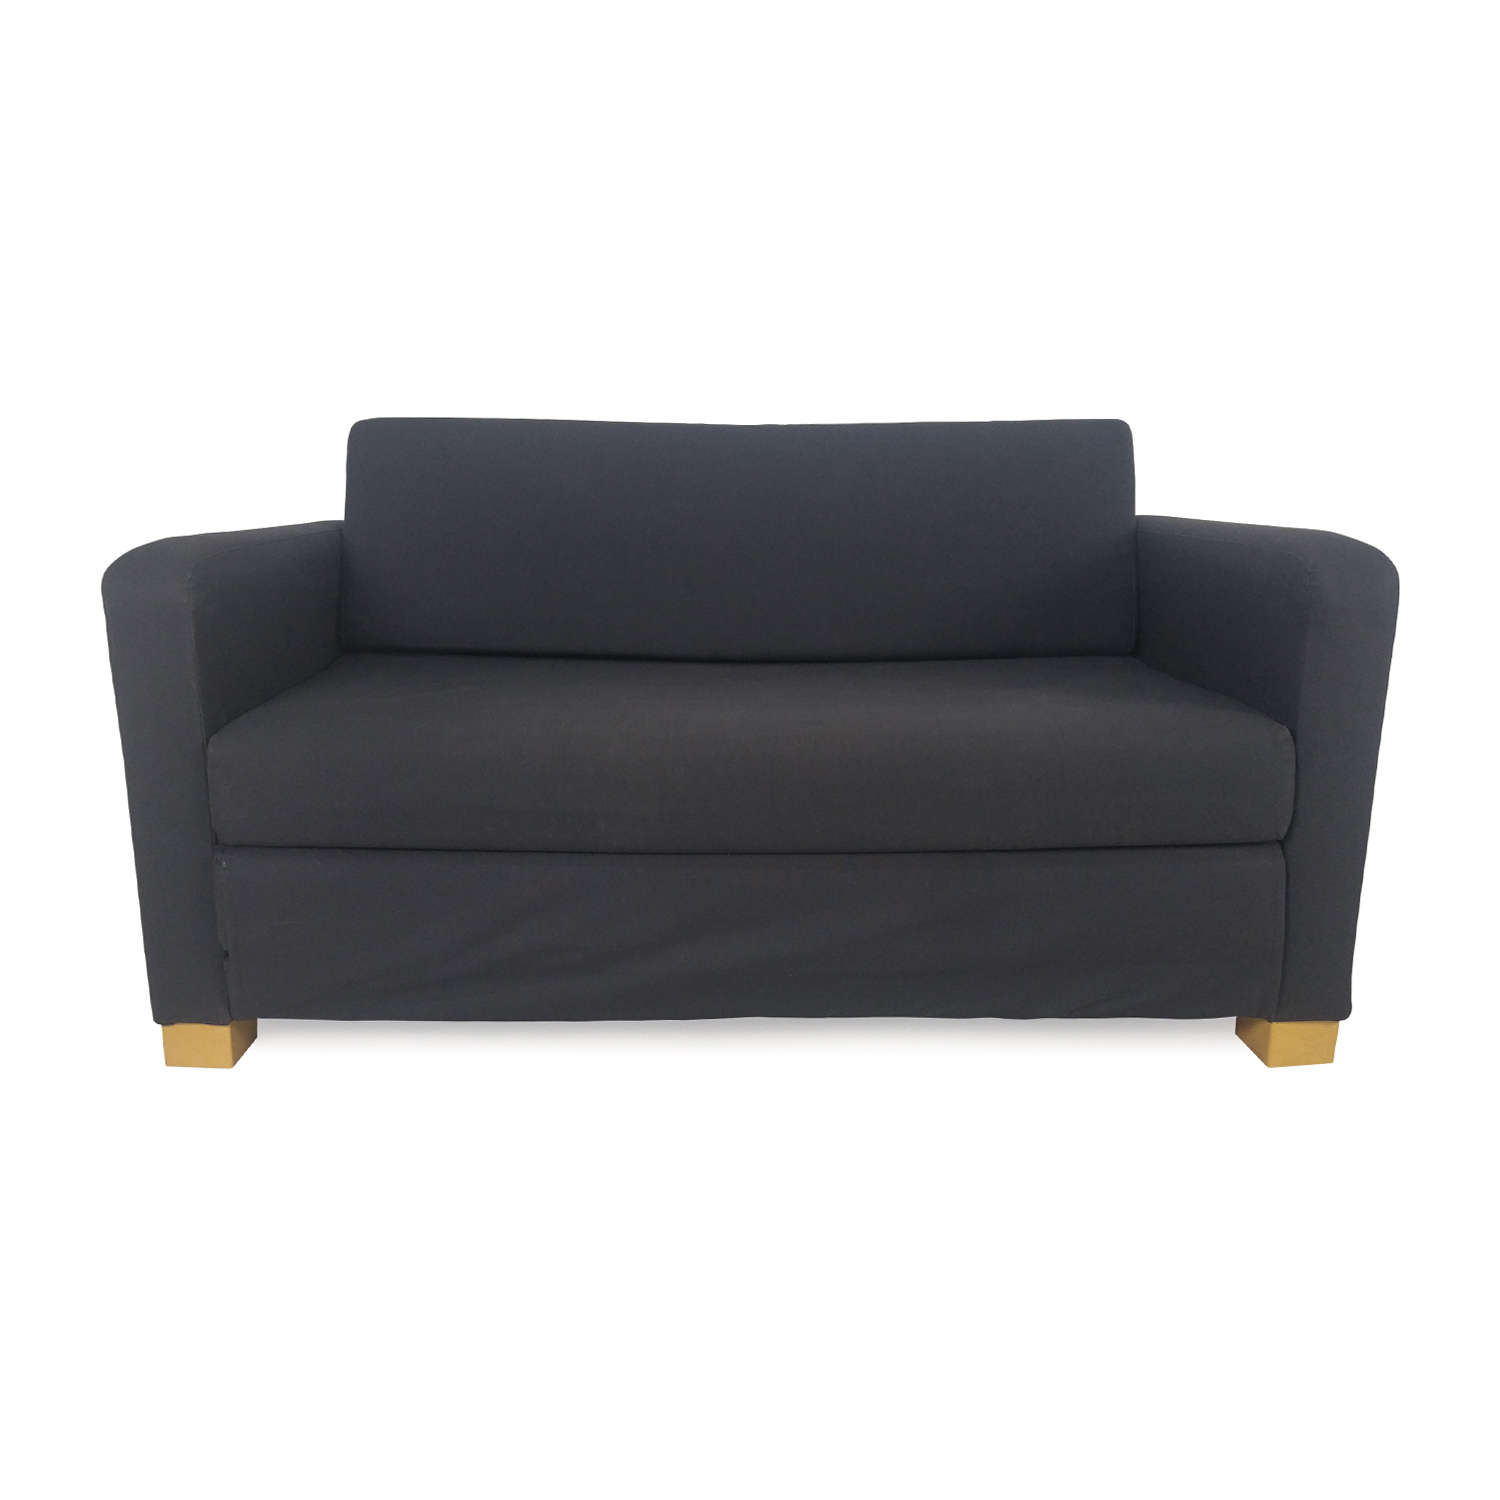 Ikea Off Blue Futon Sofa Bed For